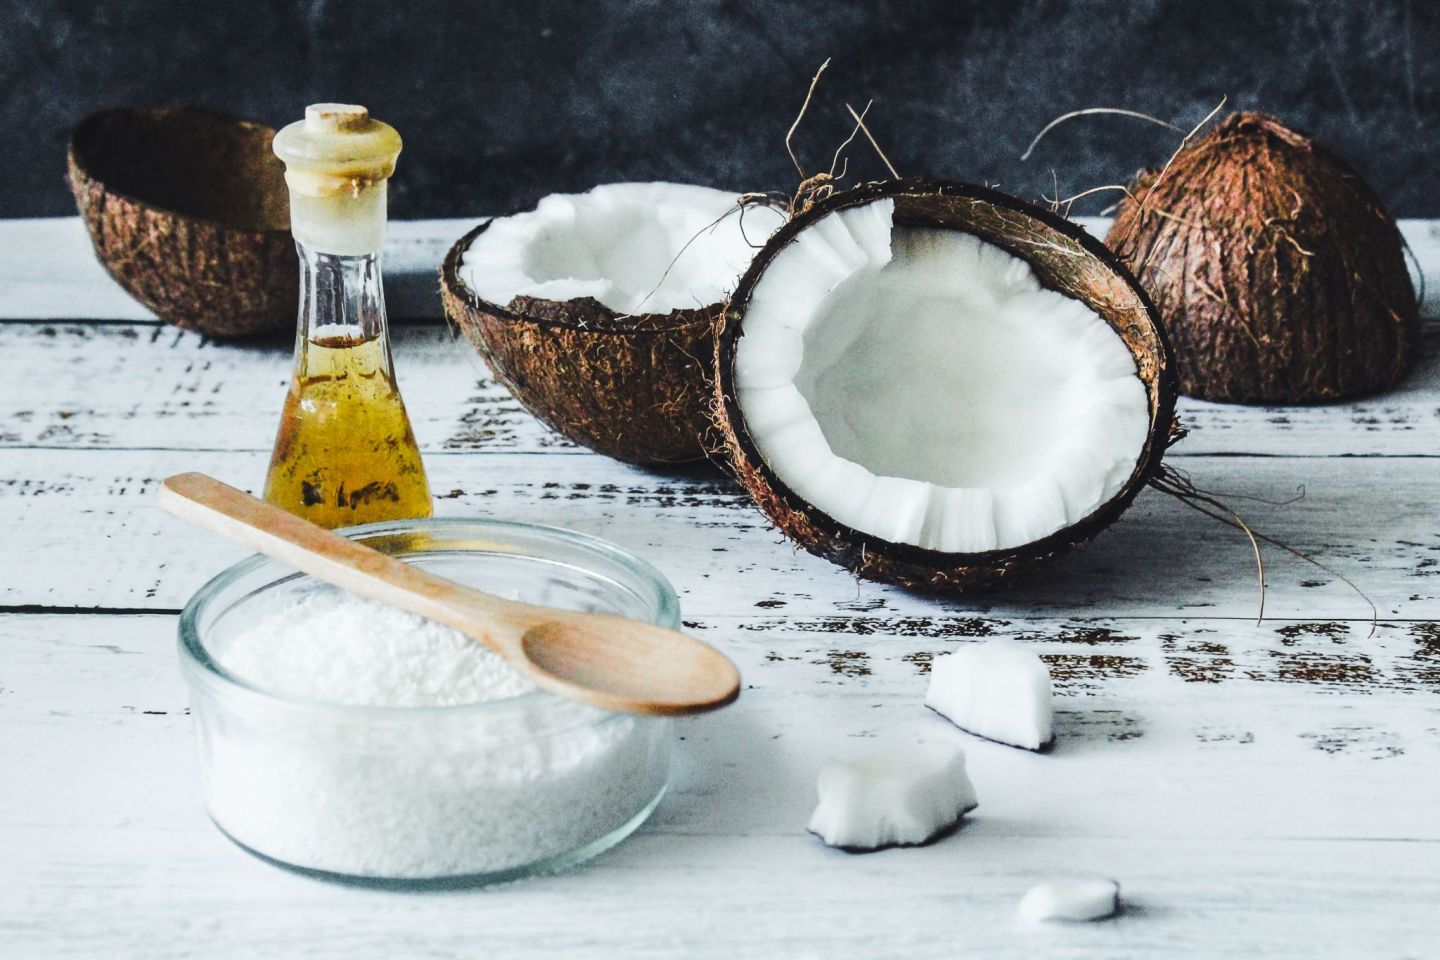 Take Coconut Oil If You Aren't Already